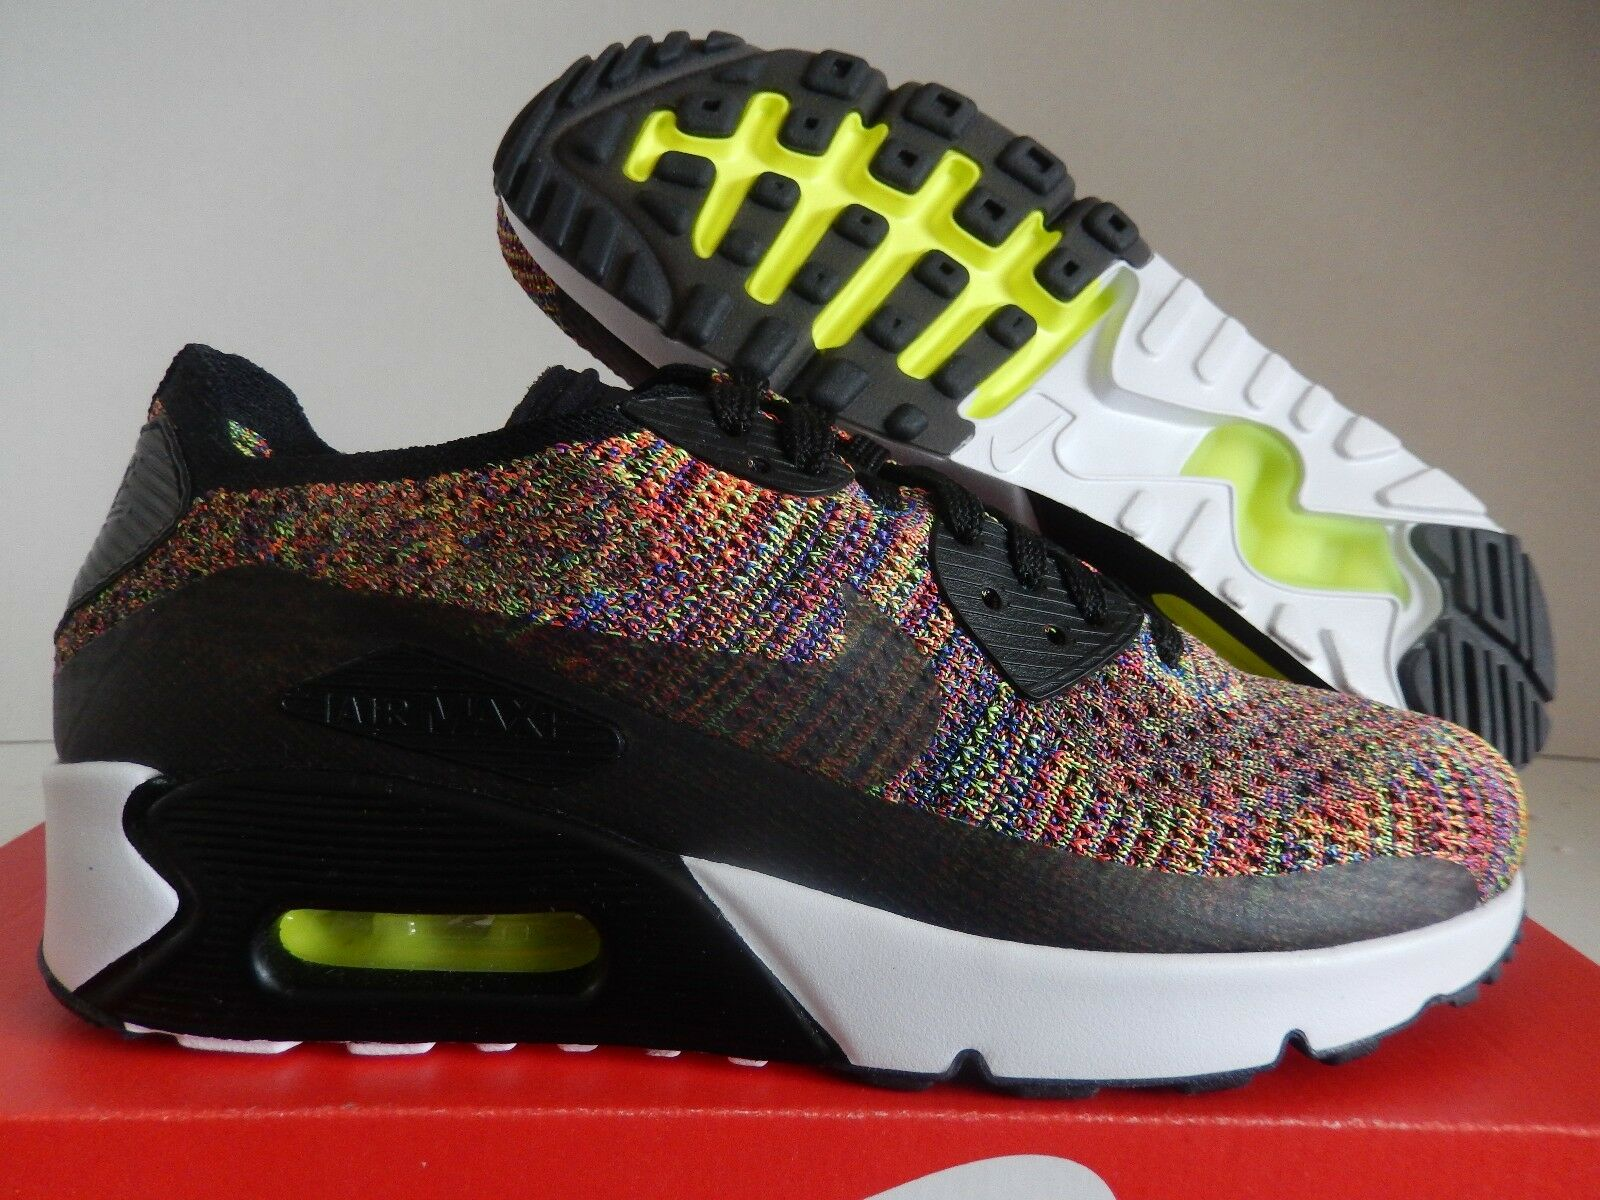 NIKE AIR MAX 90 ULTRA 2.0 FLYKNIT  MULTI COLOR  SZ 13 [875943-002]